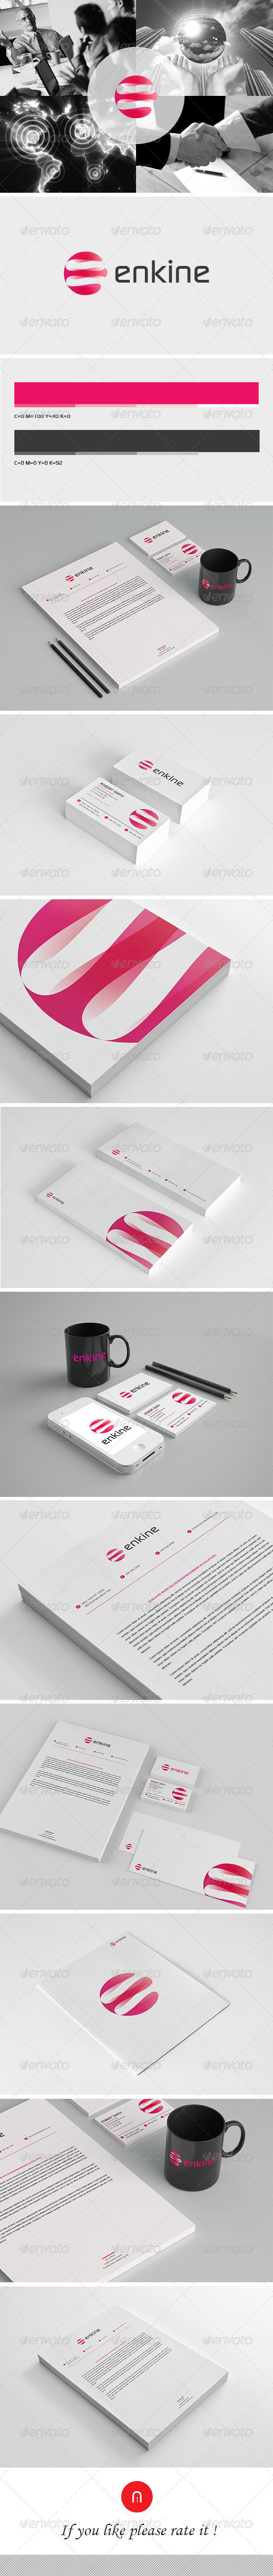 Stationary & Brand Identity - Enkine - Stationery Print Templates